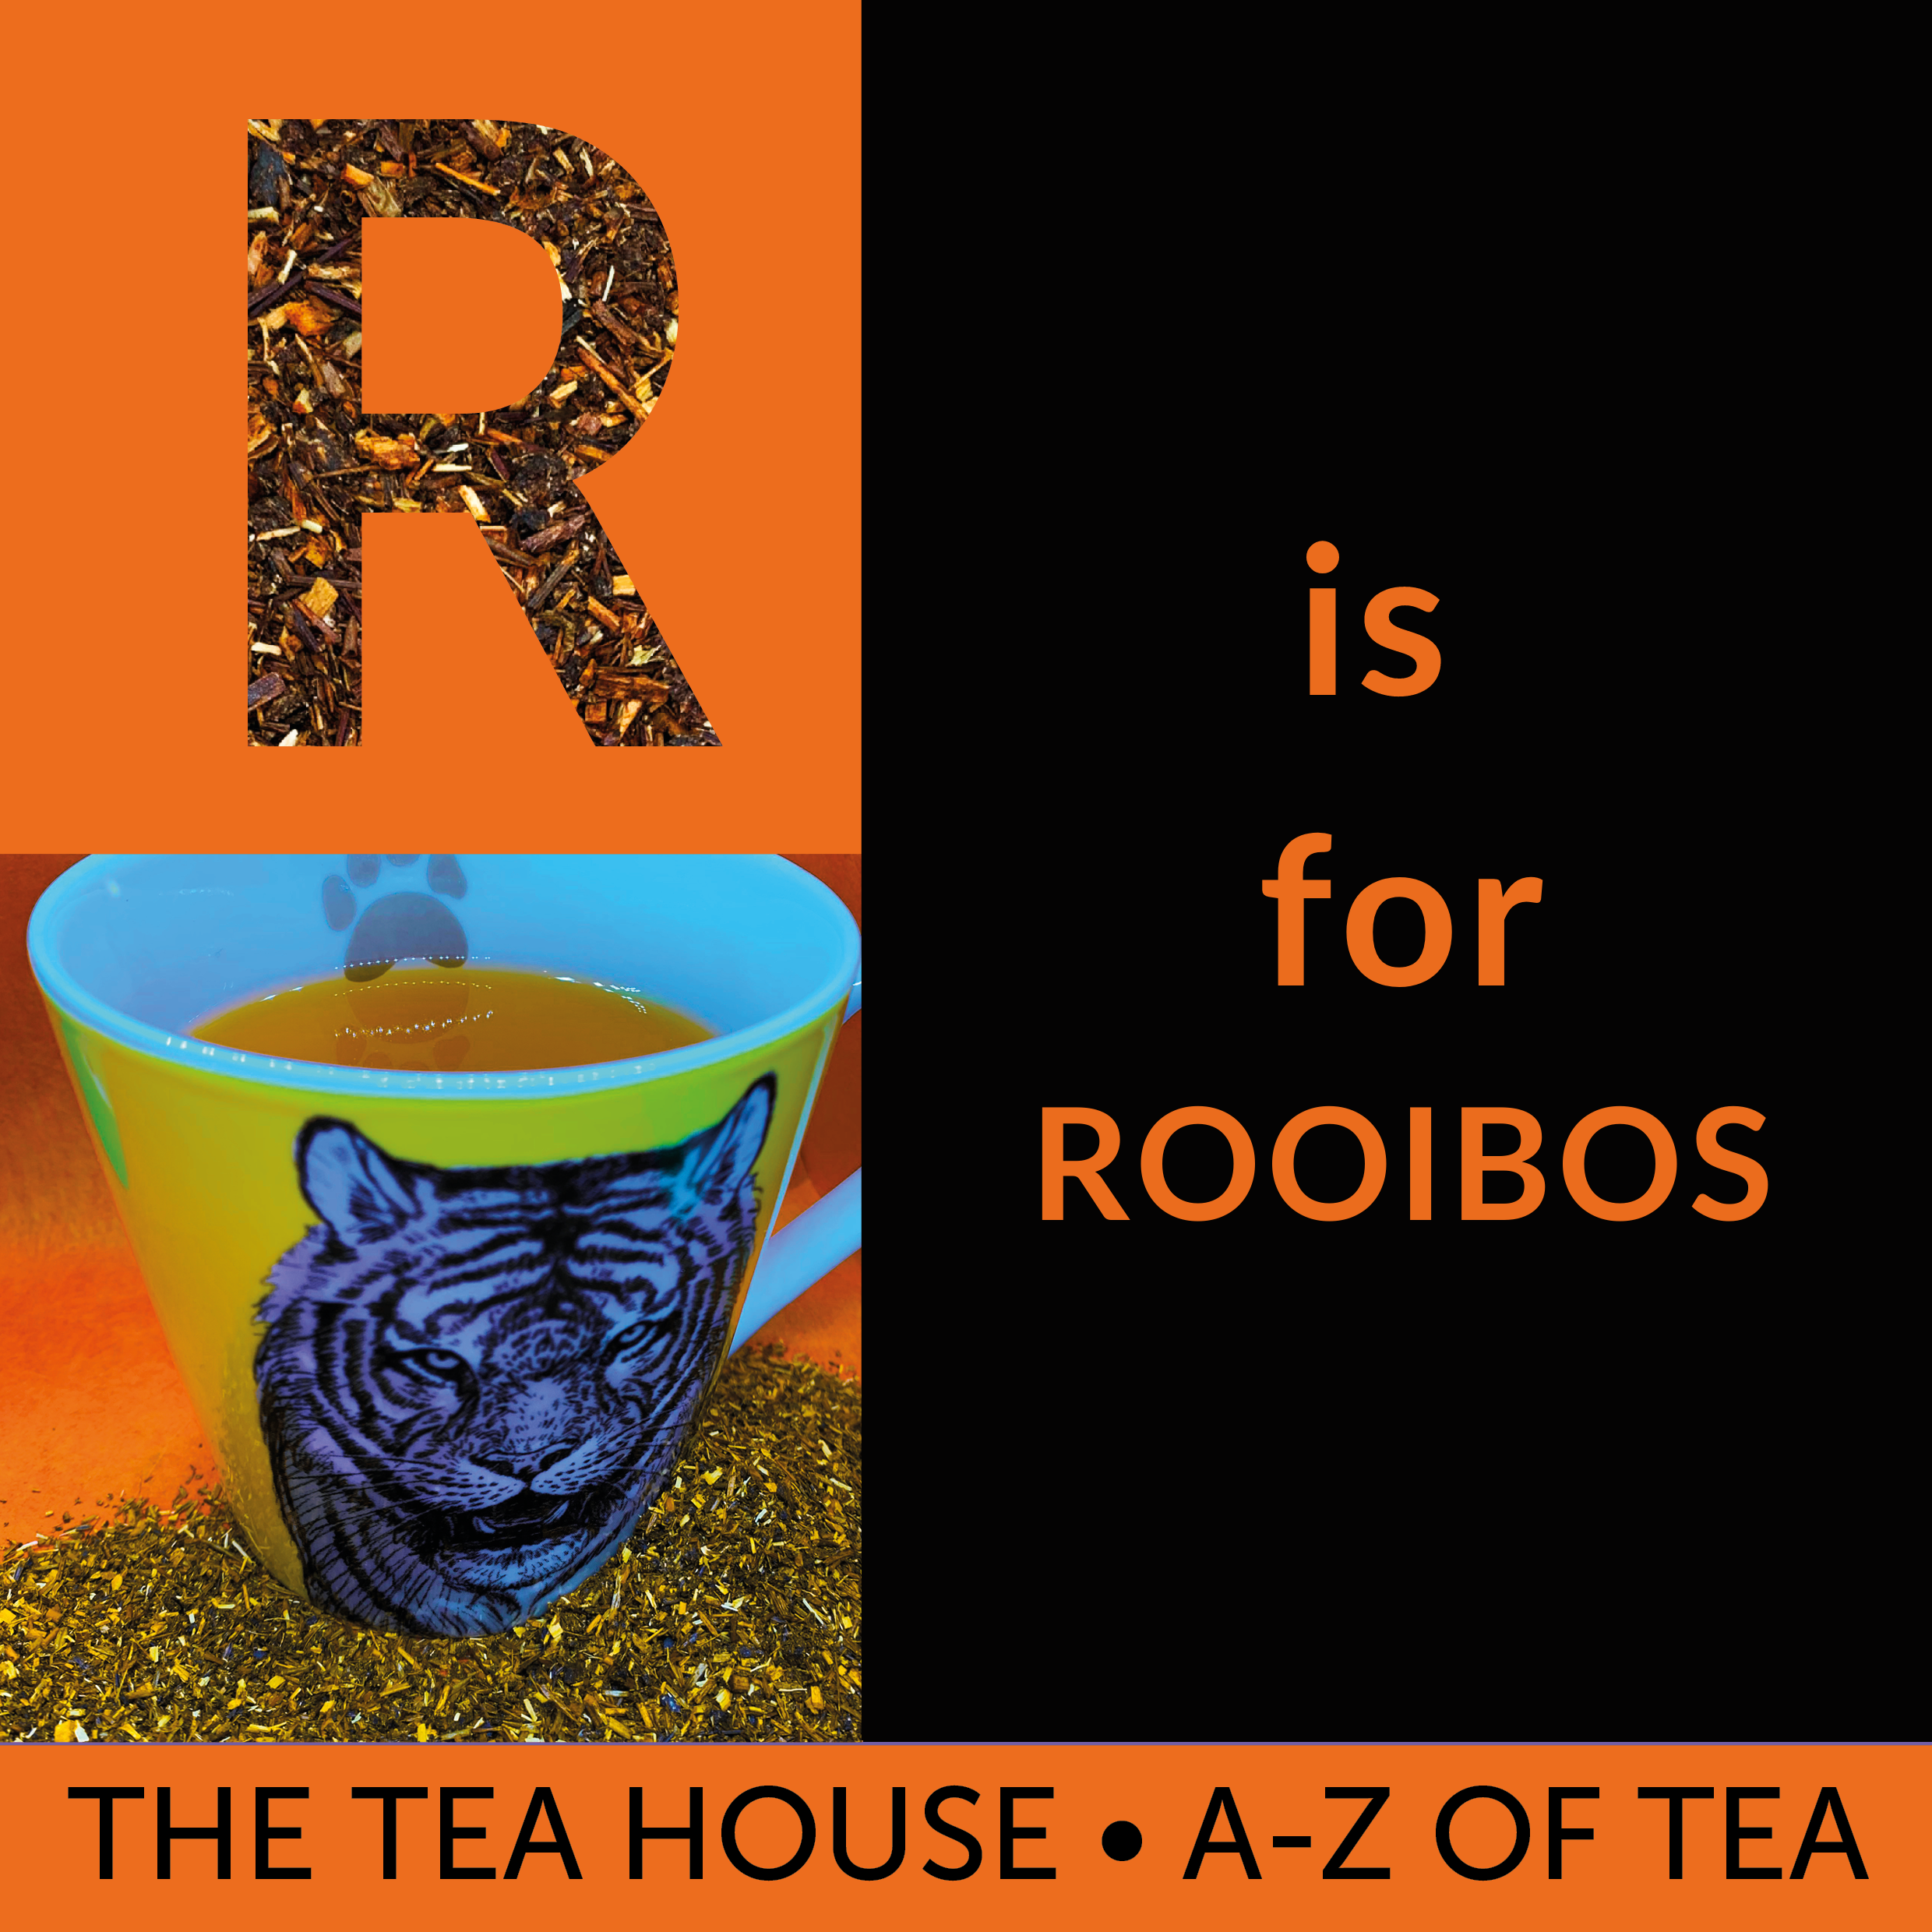 R is for Rooibos